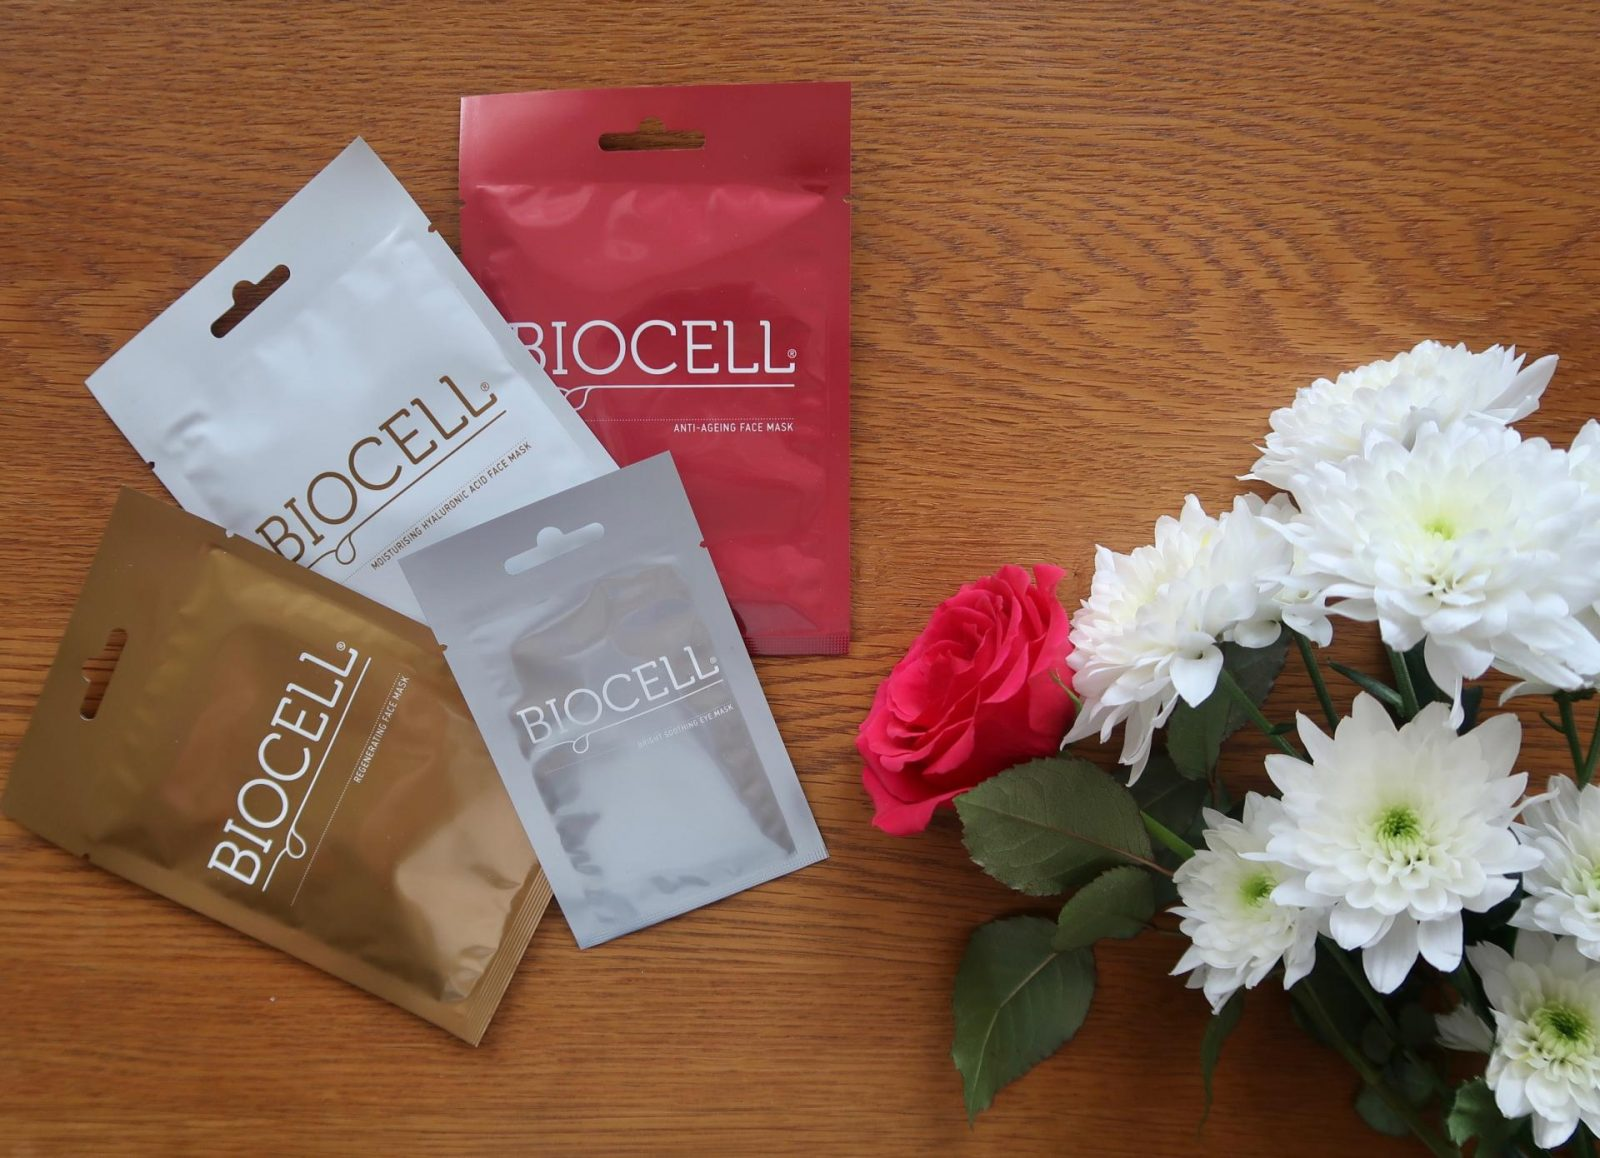 biocell face masks